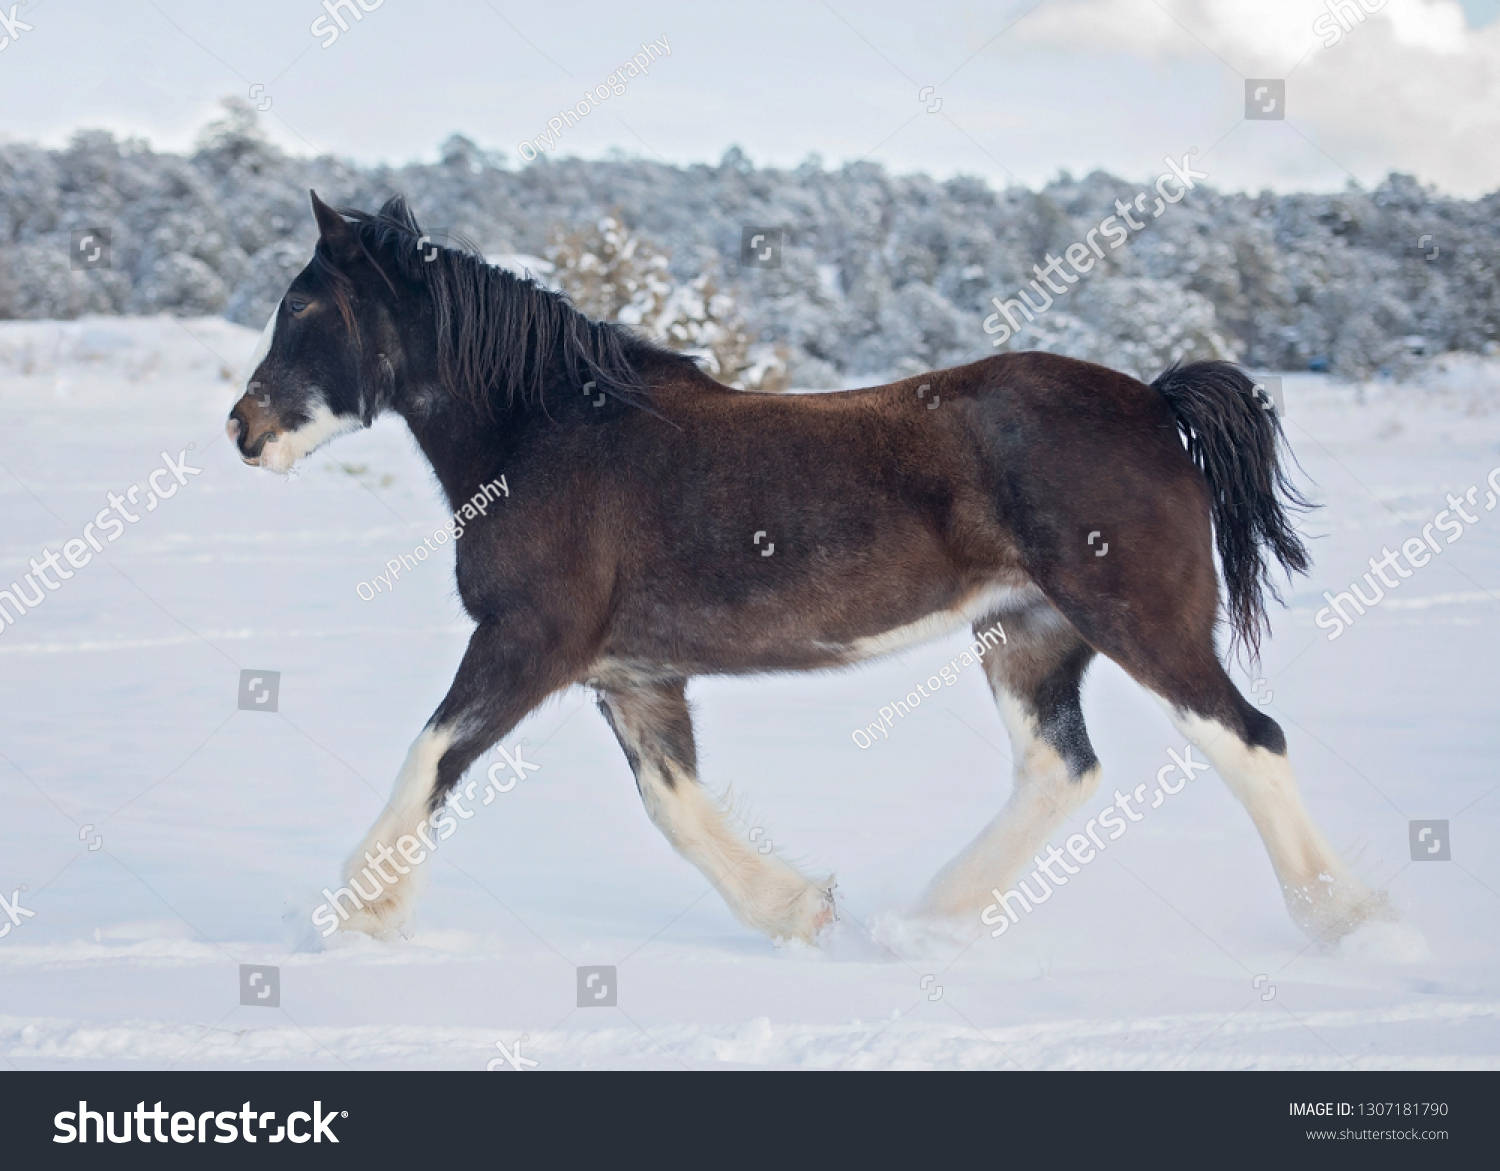 Black Clydesdale Trotting Snow Stock Photo Edit Now 1307181790